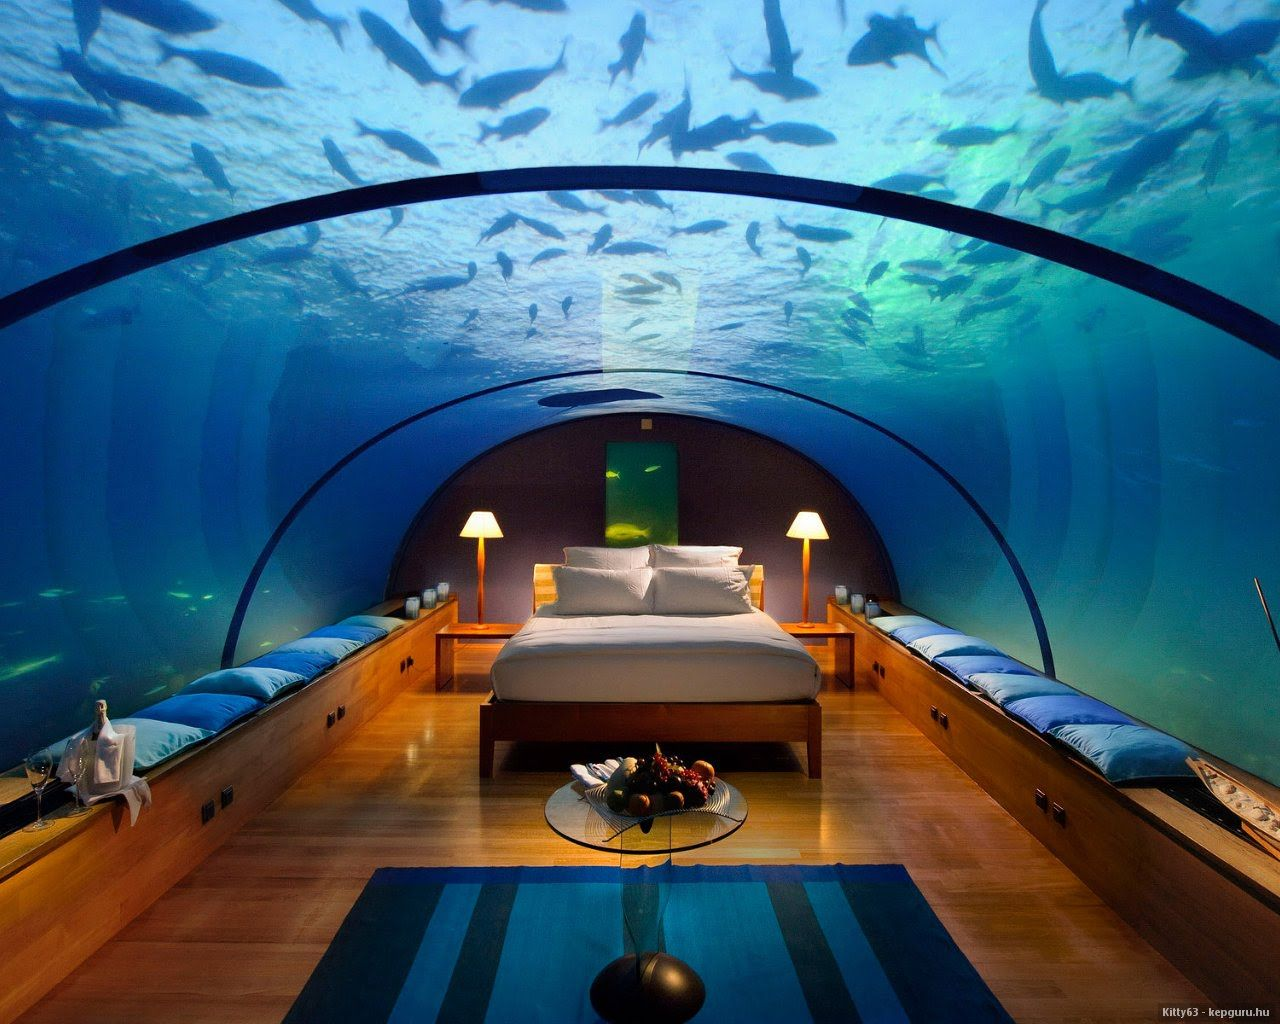 Fish aquarium in brisbane - 12 Outstanding Bedrooms Set With Aquarium Where You Would Love To